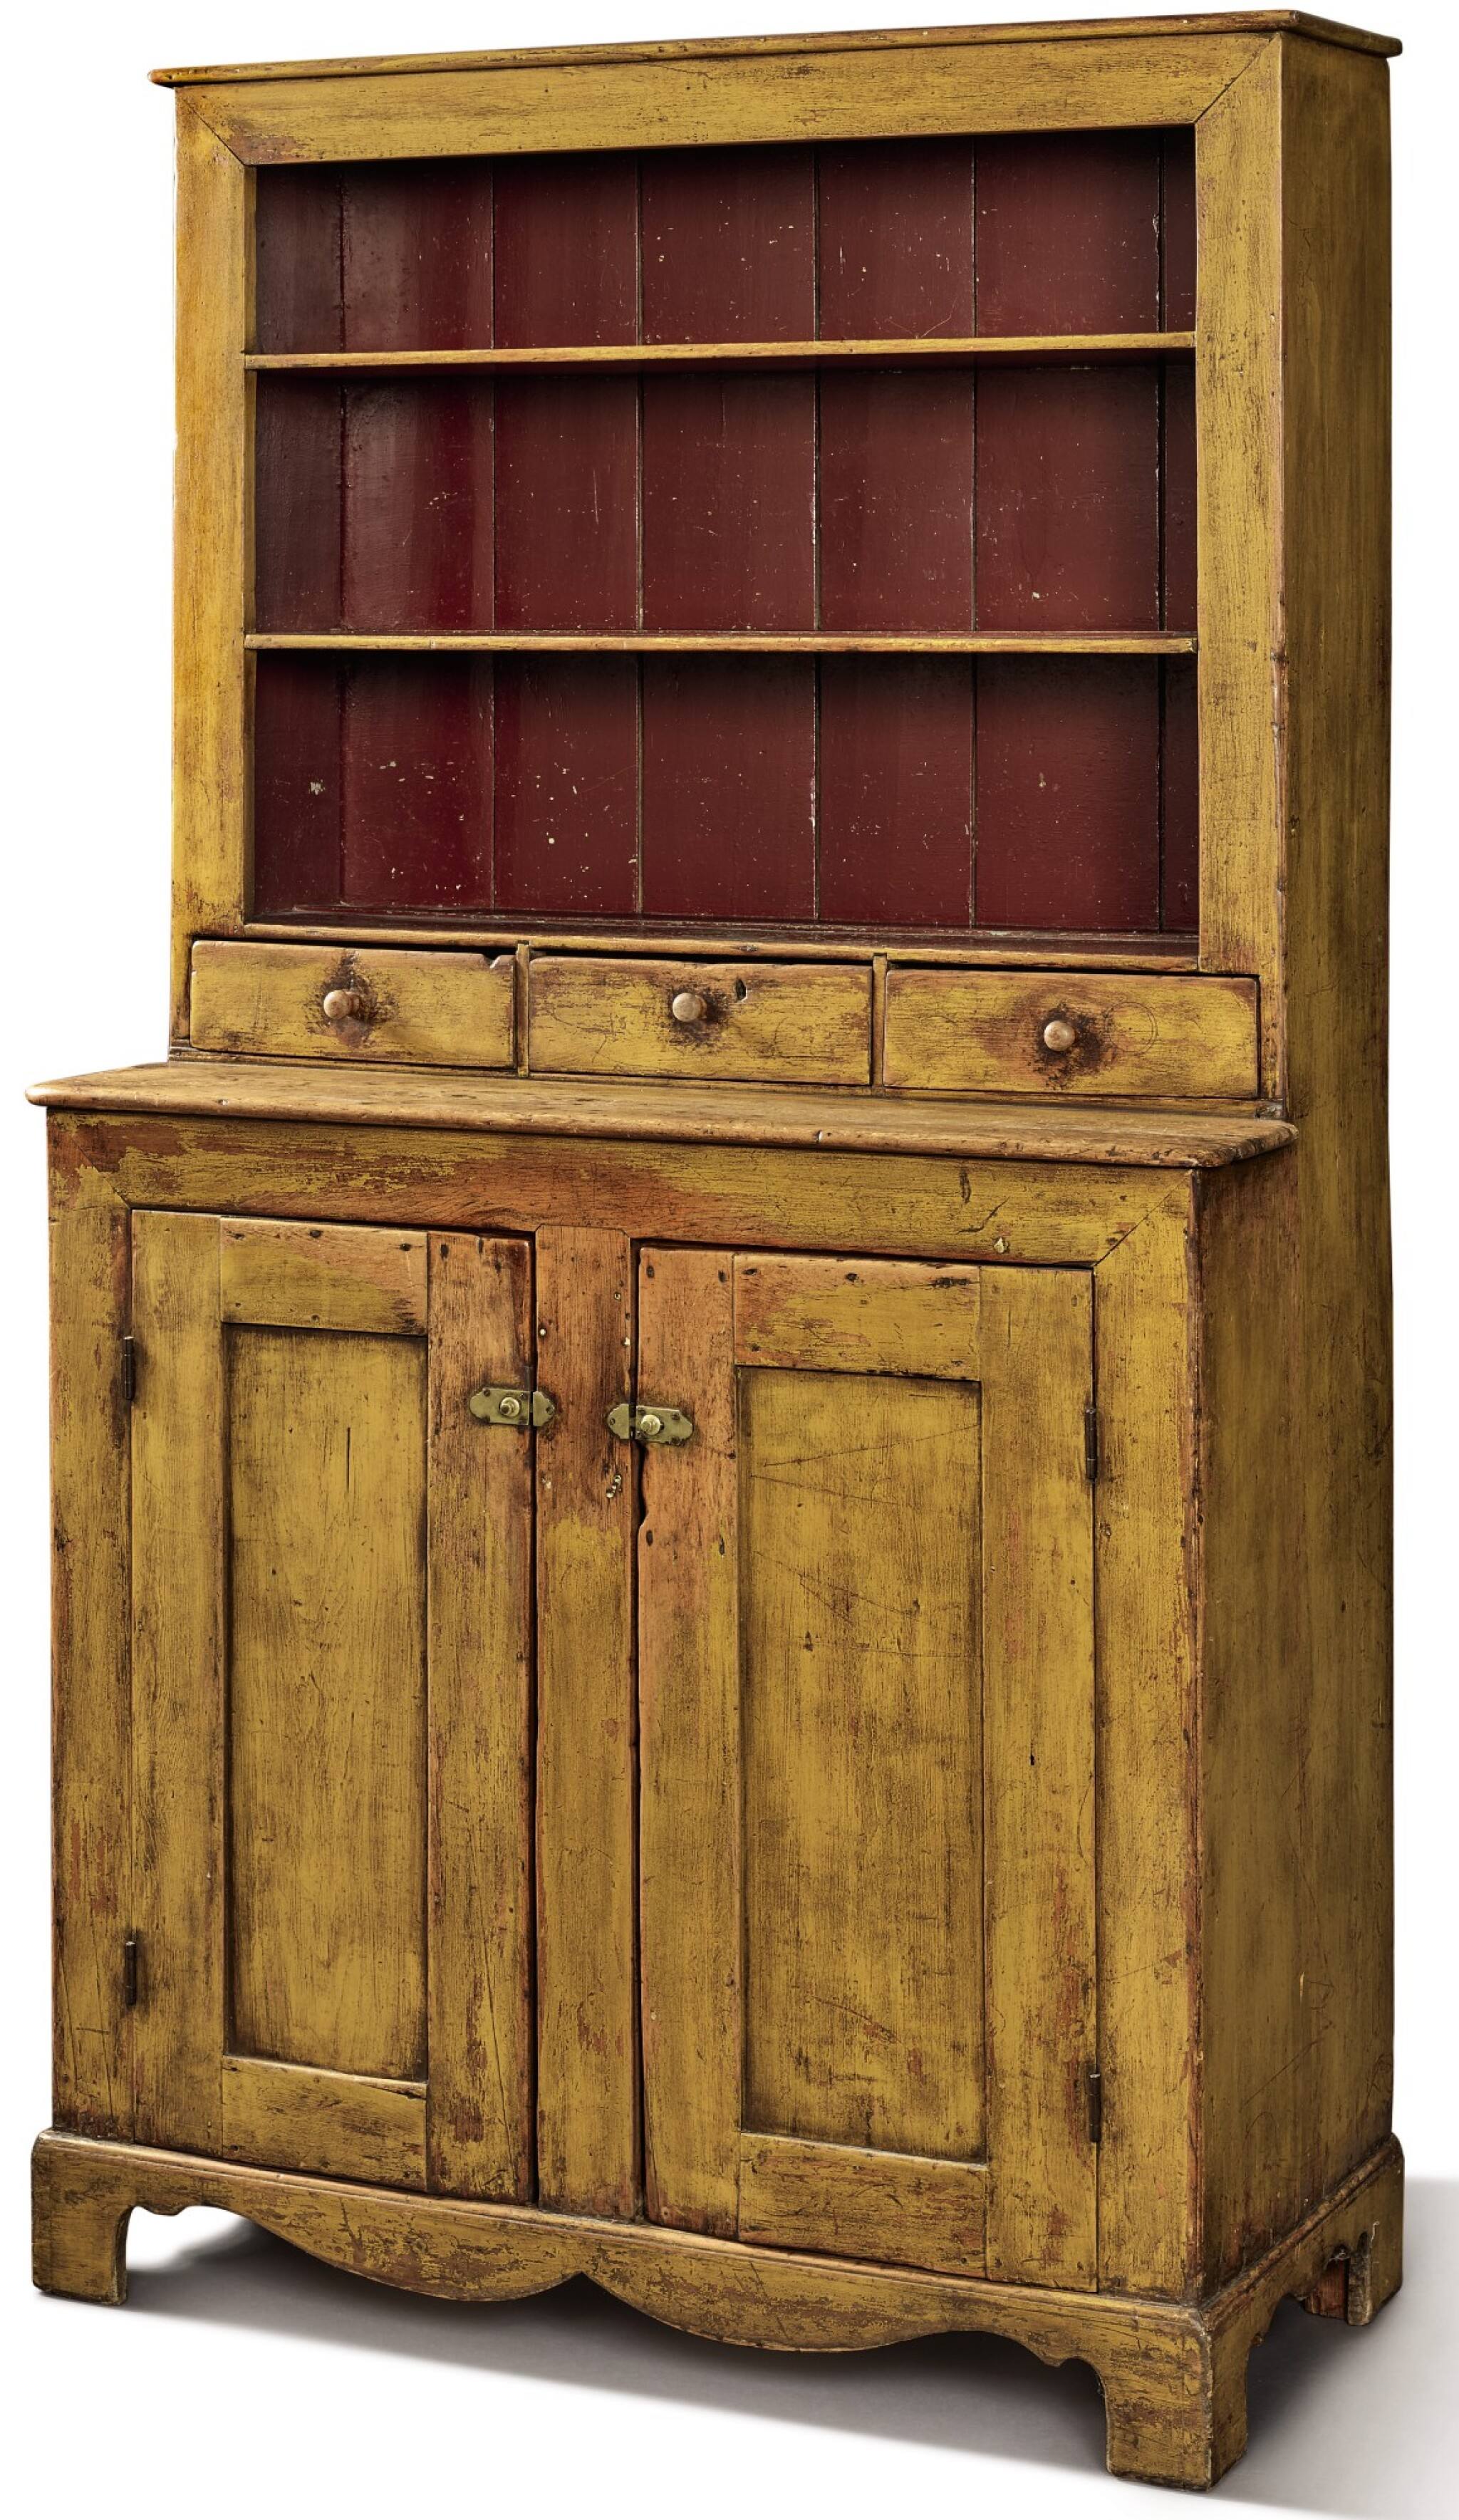 View full screen - View 1 of Lot 1527. YELLOW-PAINTED PINE STEP-BACK OPEN-TOP CUPBOARD, PENNSYLVANIA, CIRCA 1840.